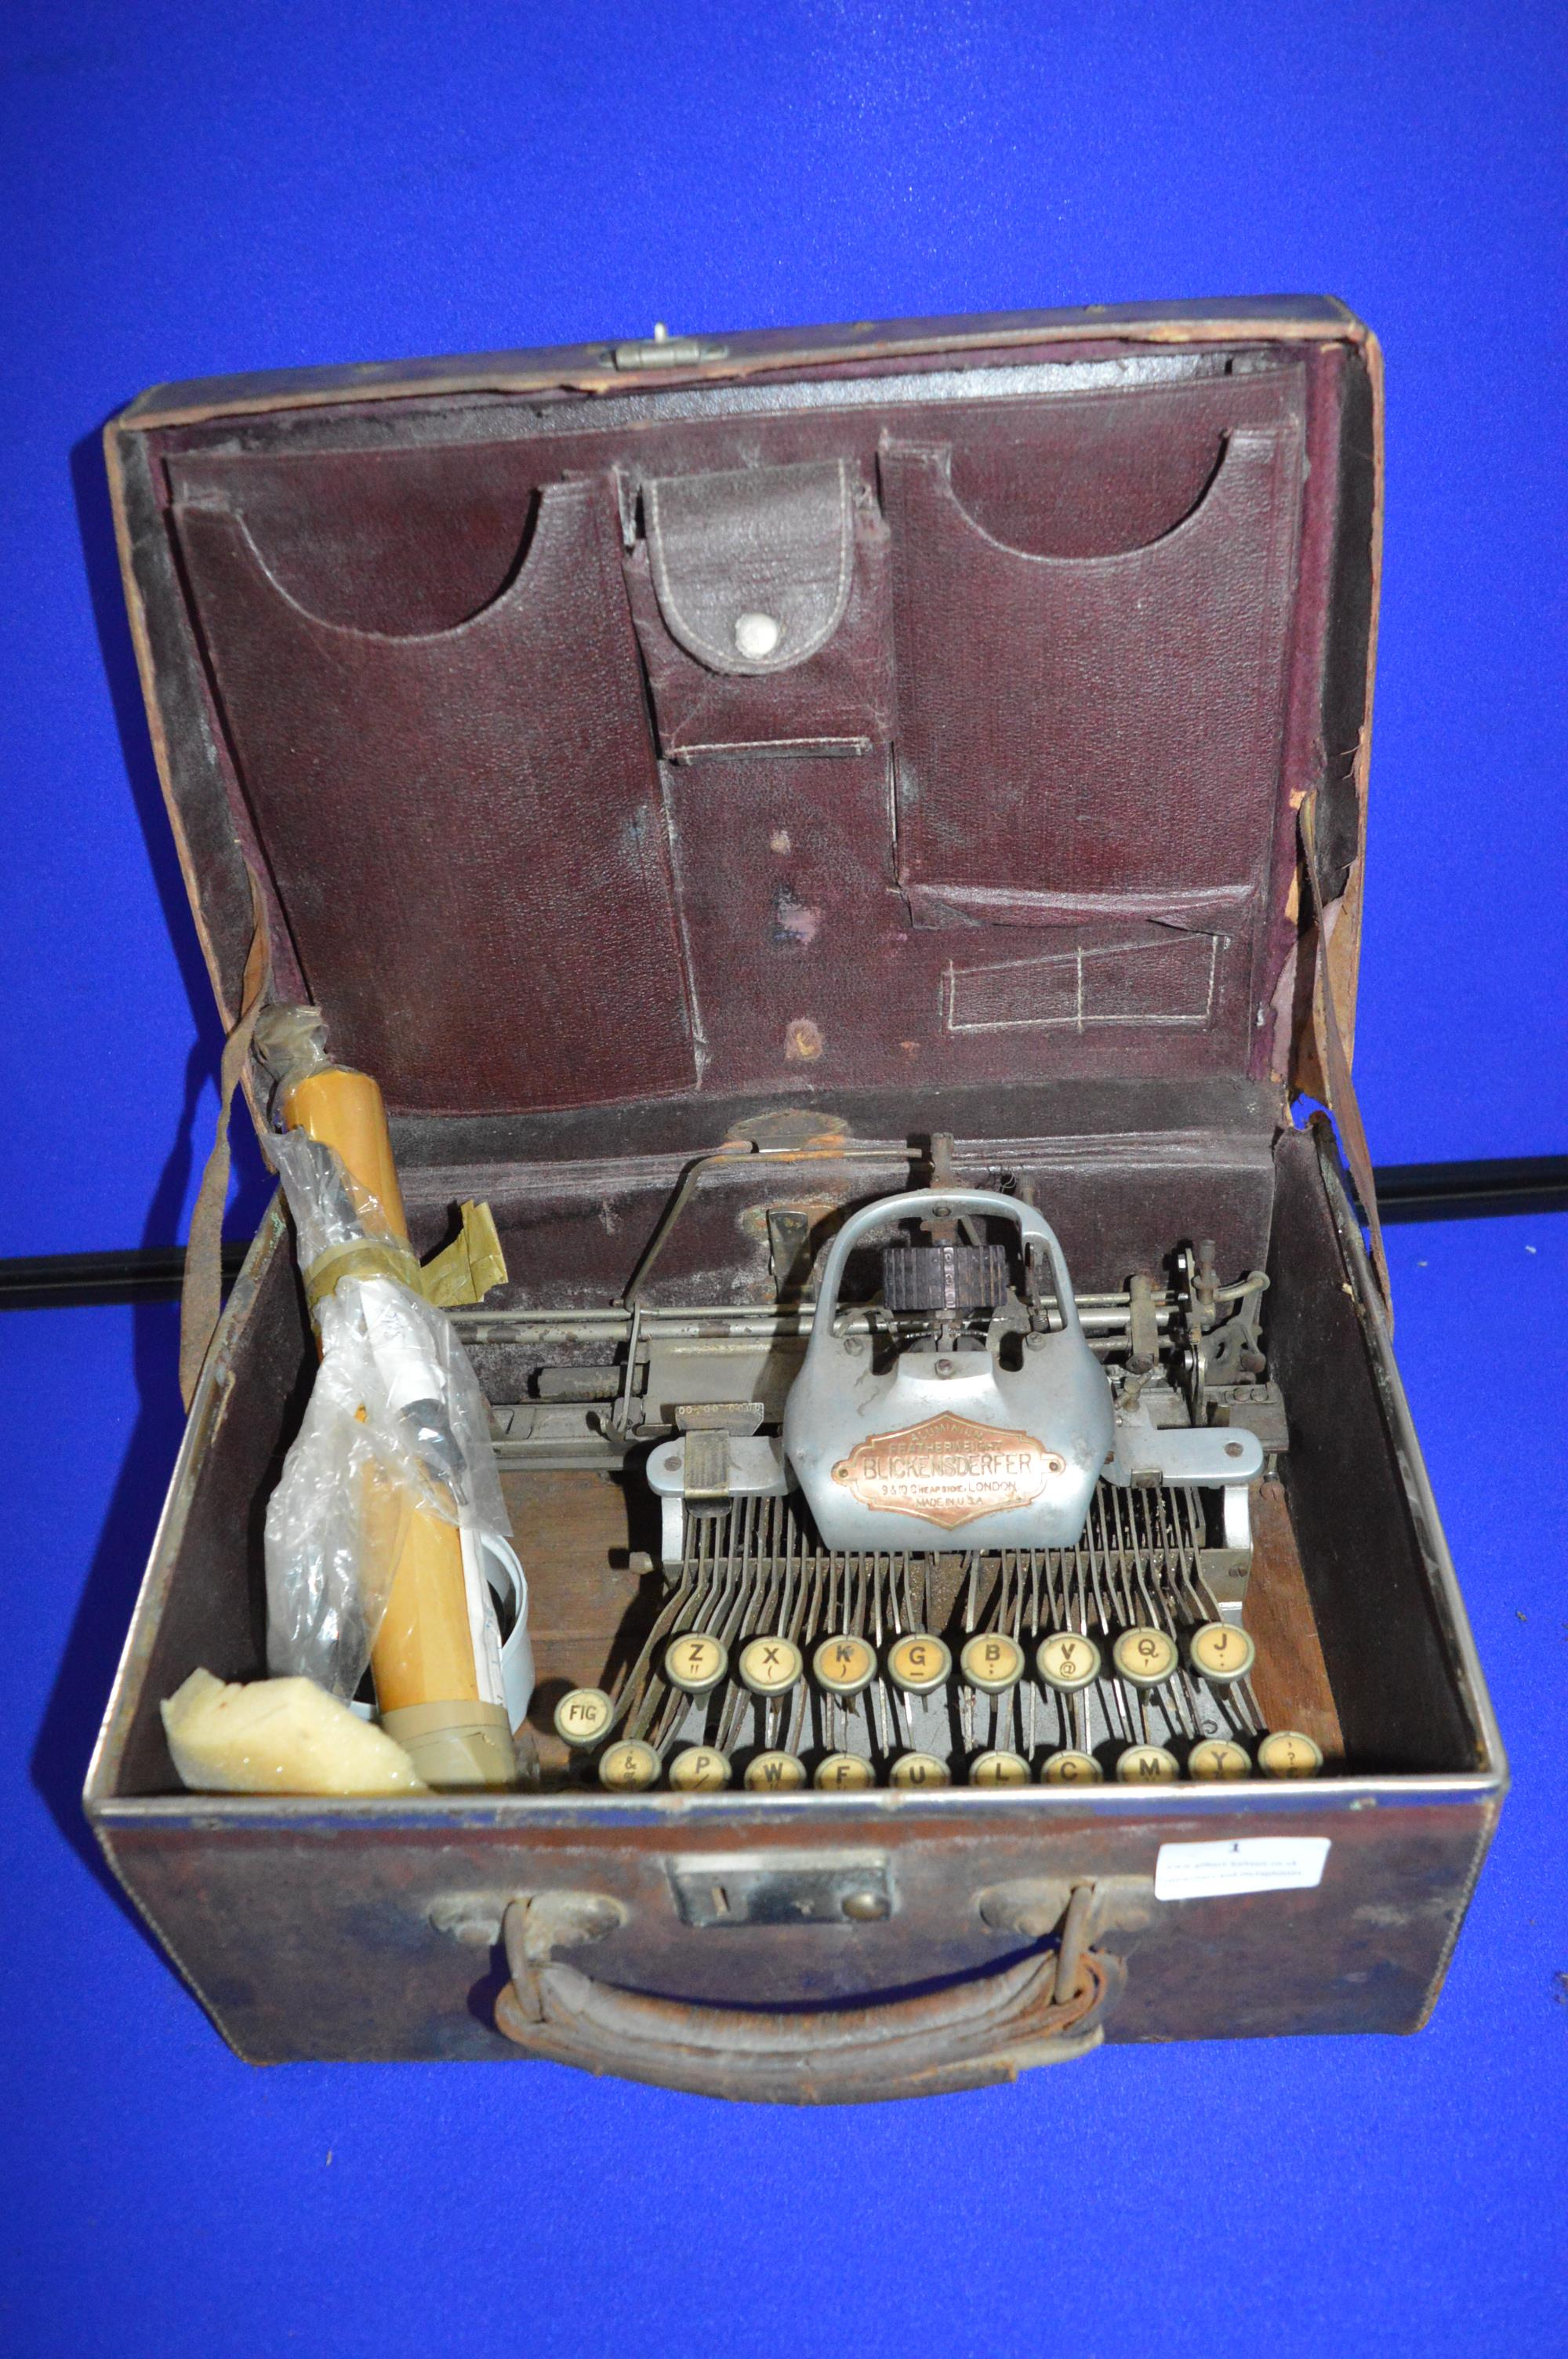 Blickensderfer Aluminium Featherweight Typewriter in Original Leather Case - Image 3 of 3